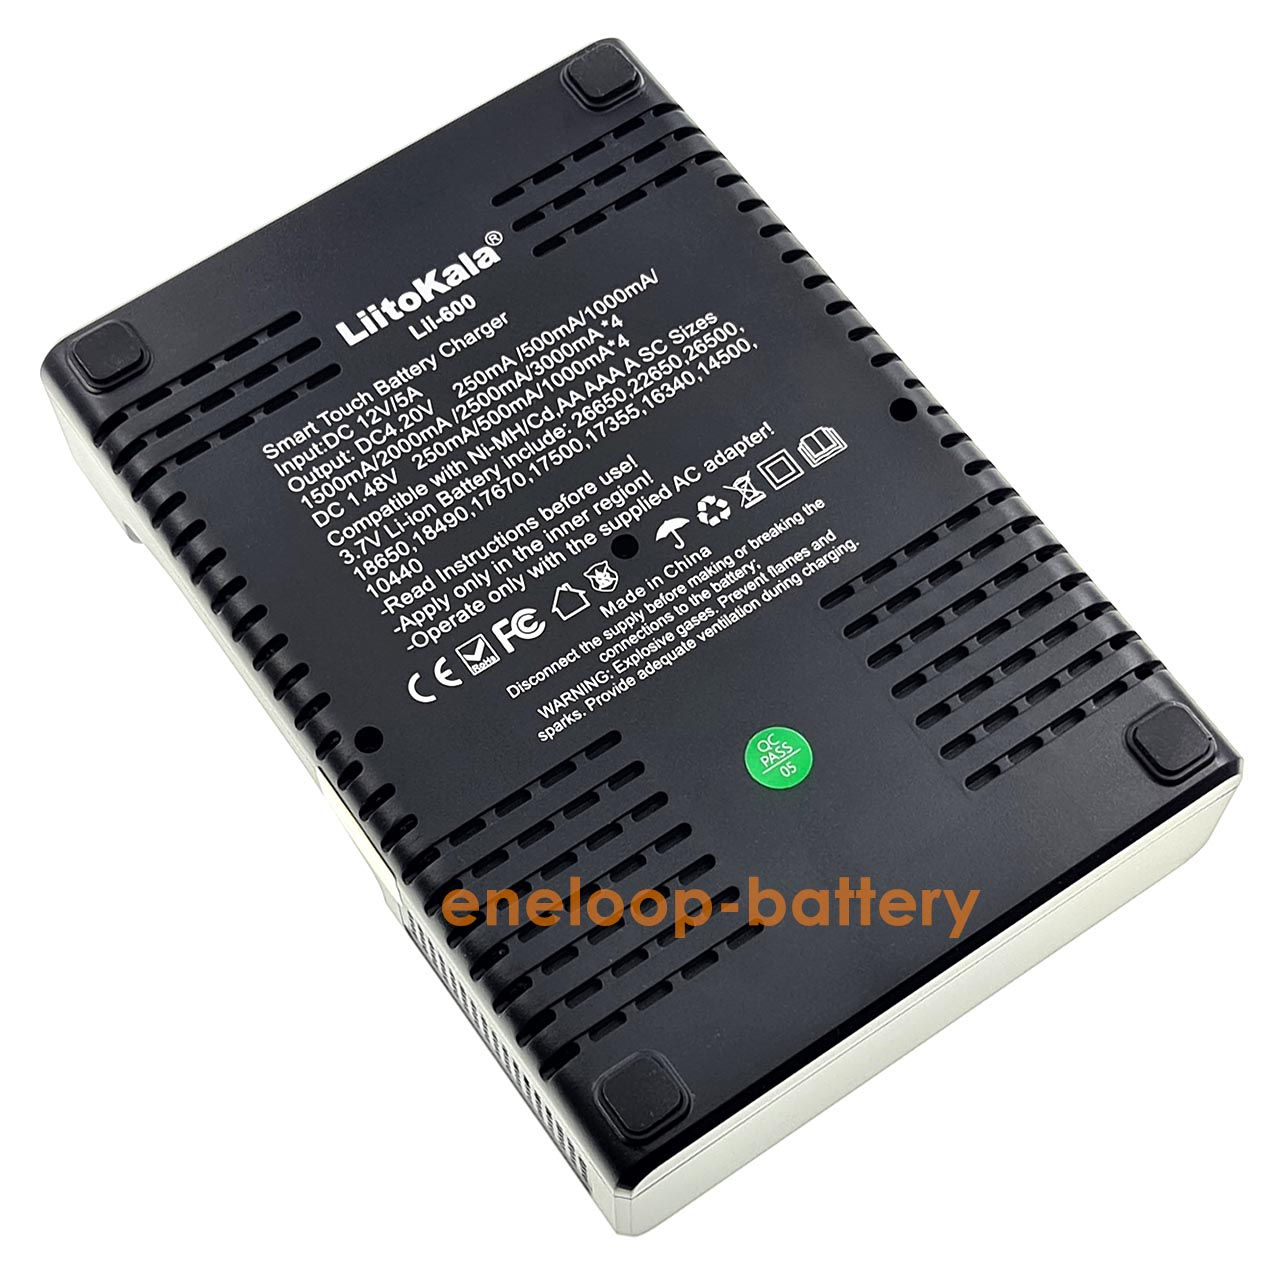 Battery Charger Lii-600